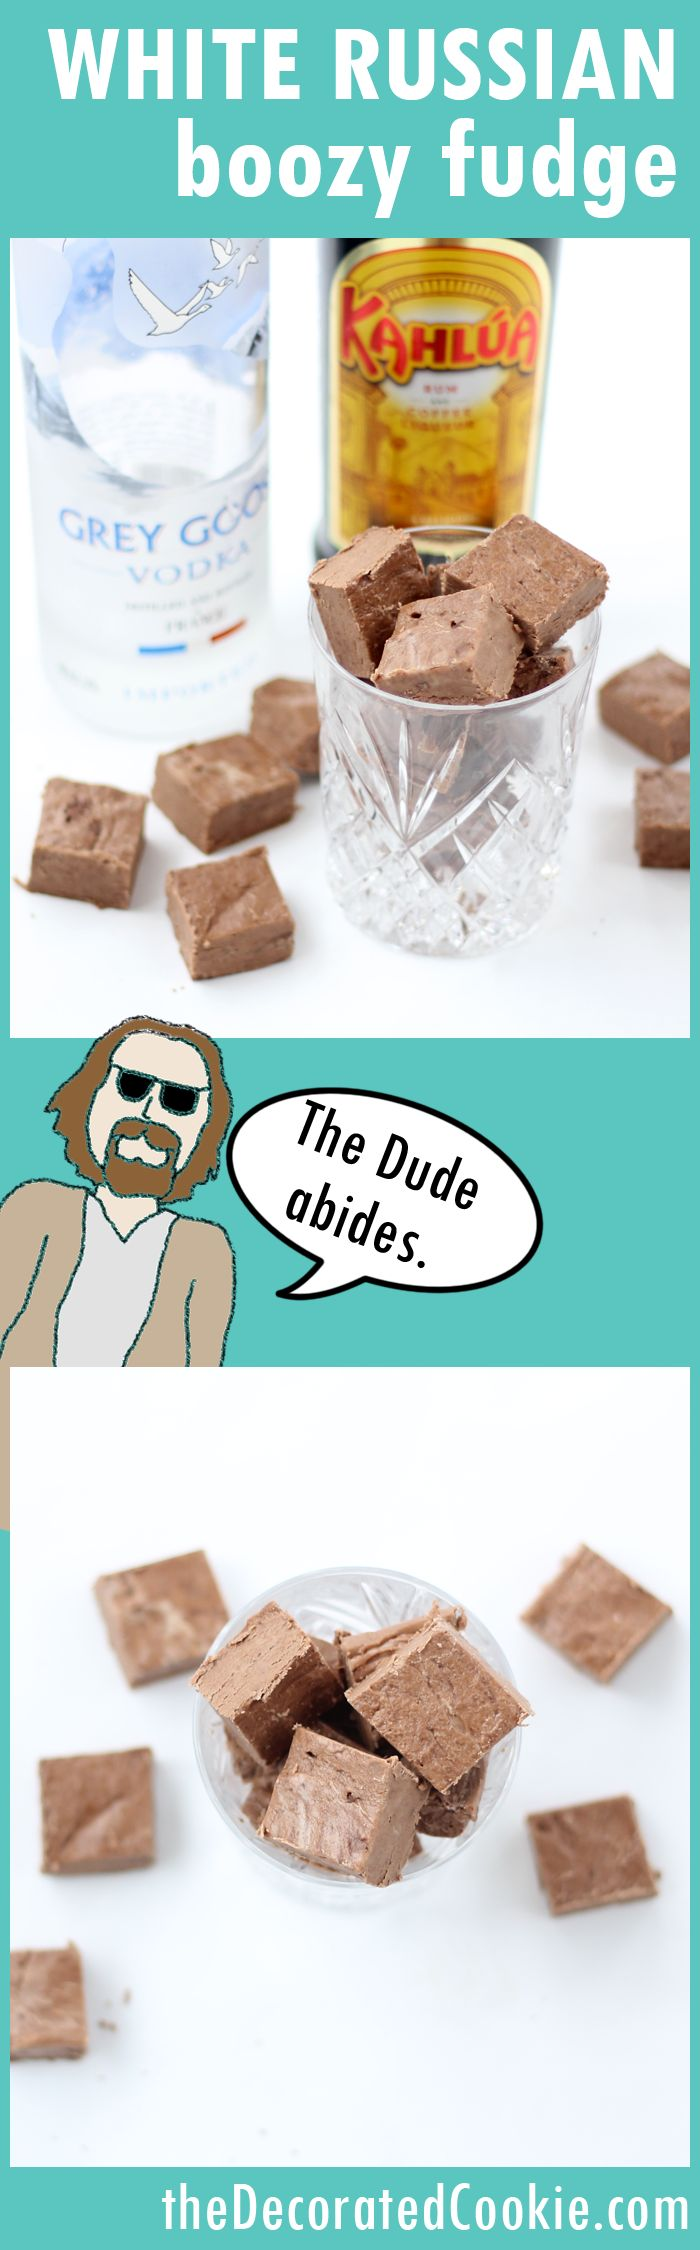 White Russian boozy fudge - 4-ingredients, minutes to make, full of booze and awesome. The Big Lebowski would approve.